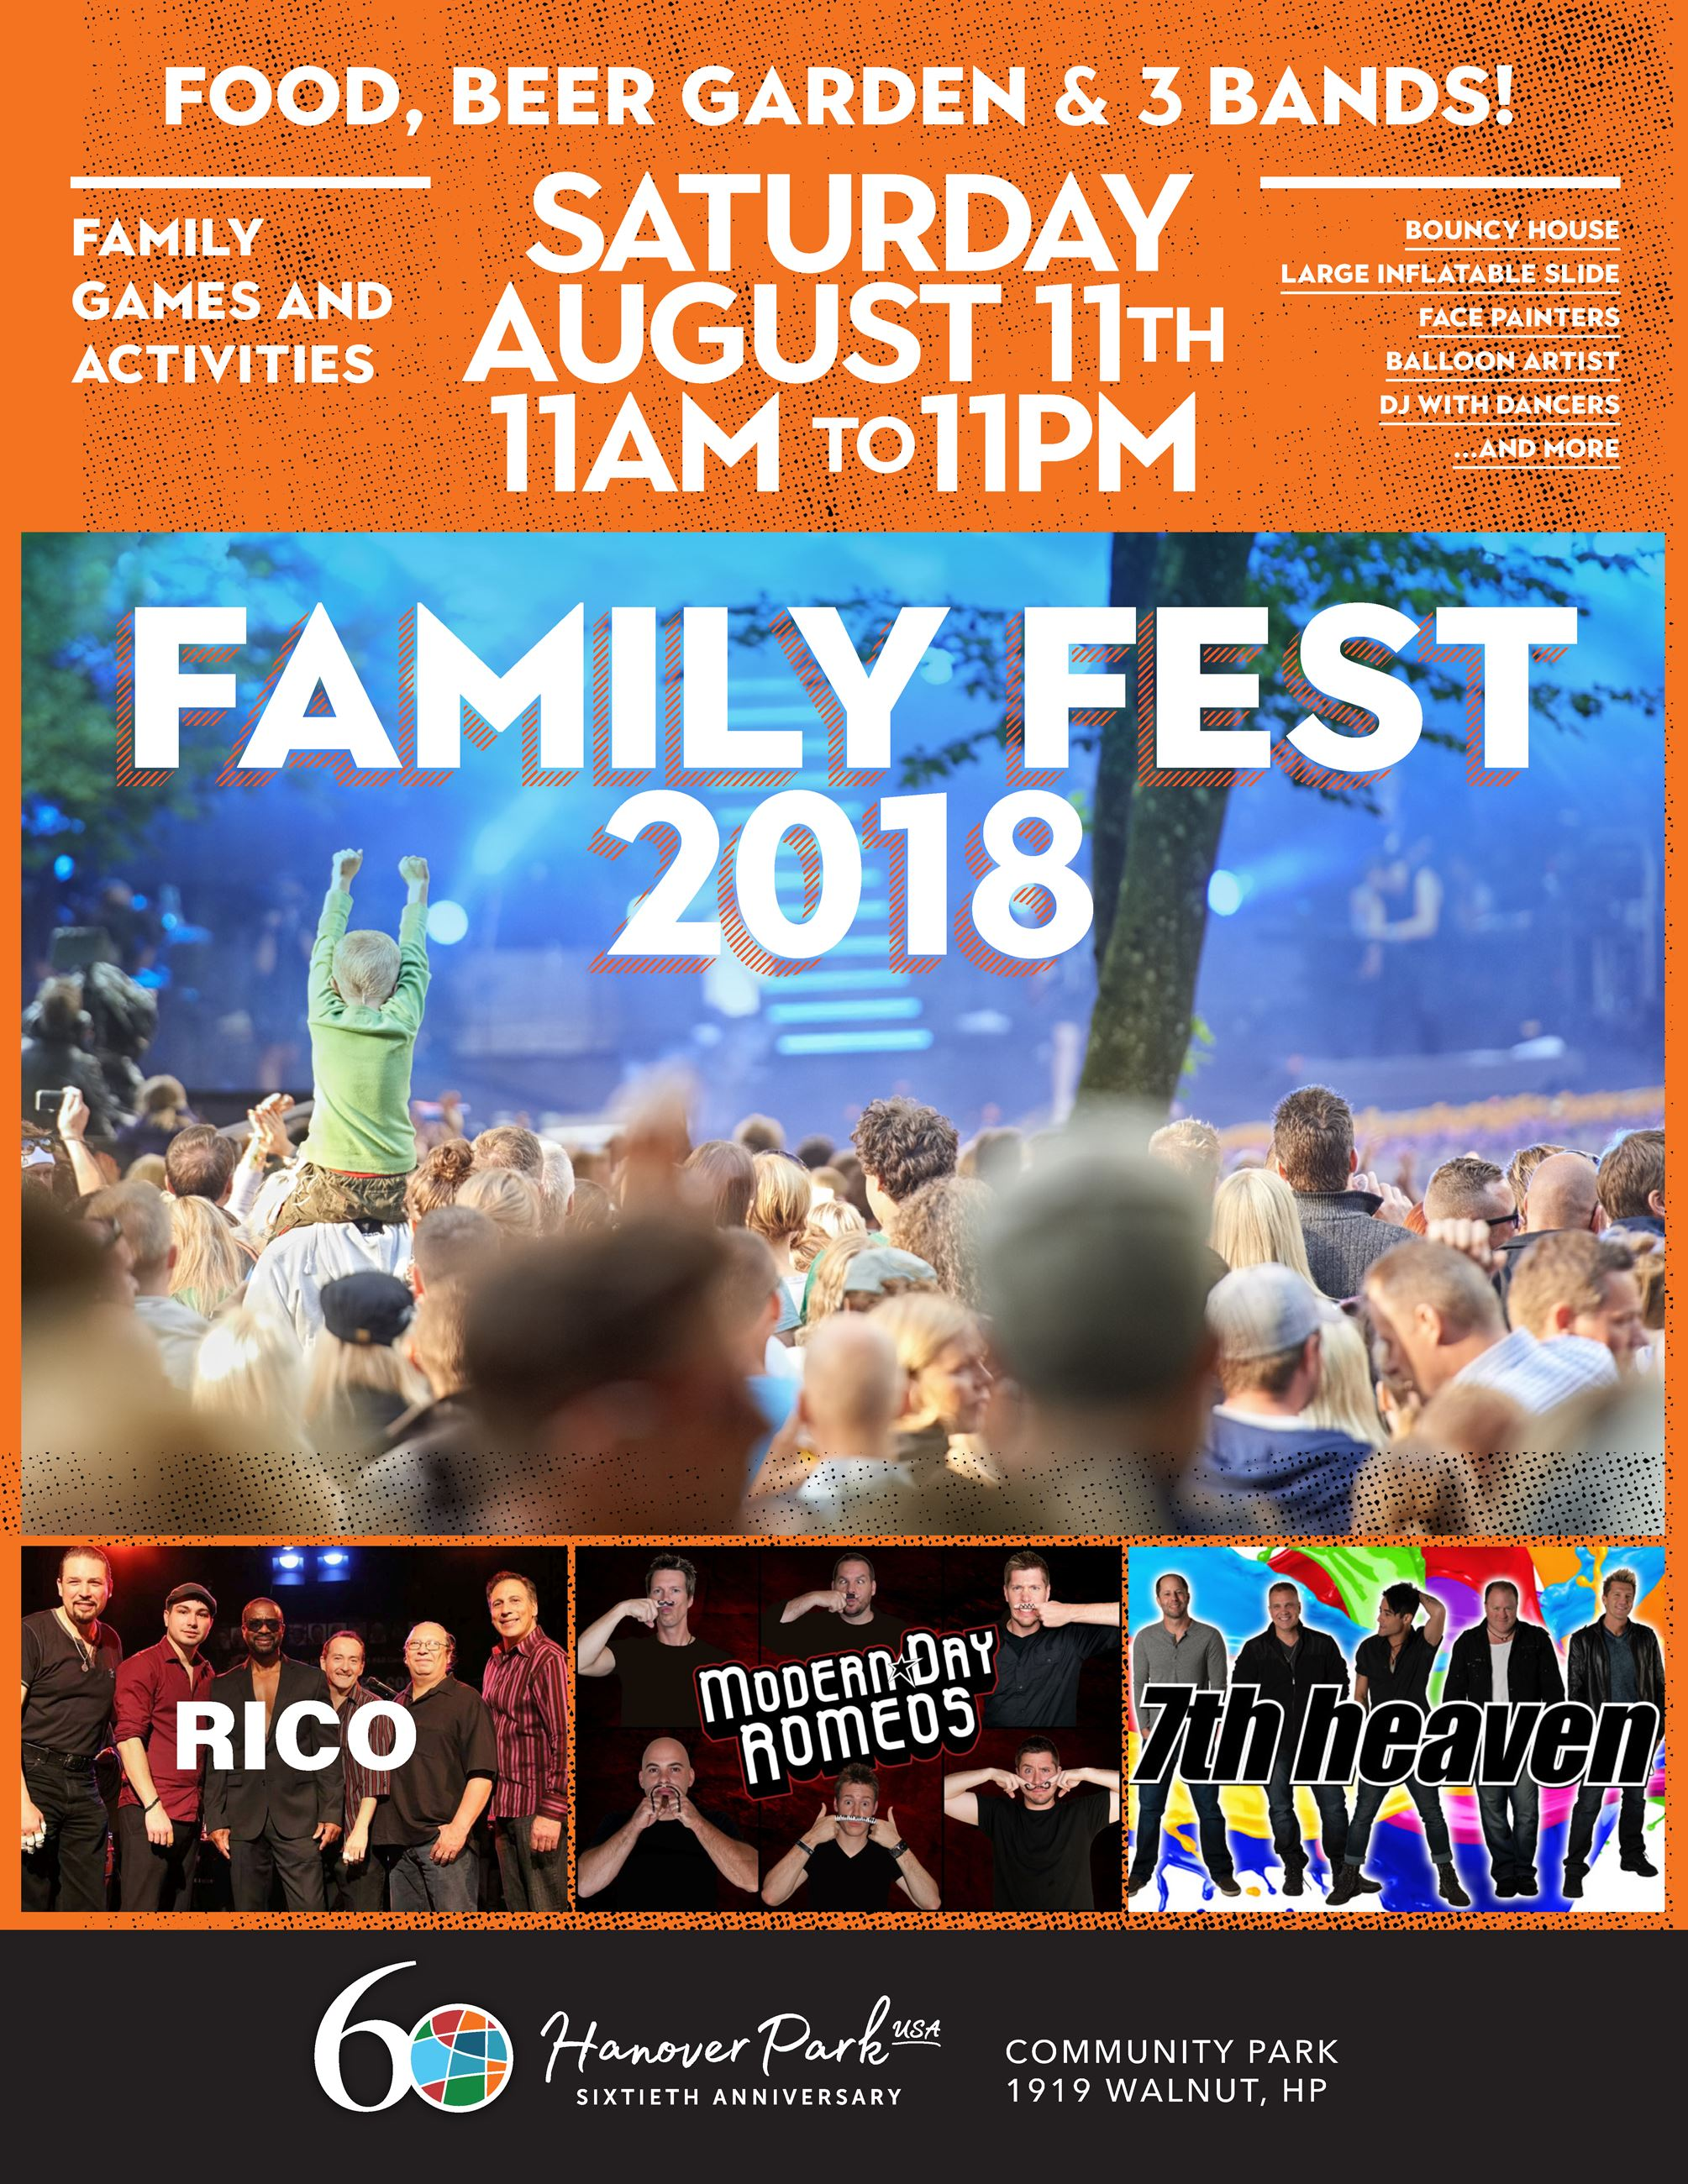 HPIL_2018_FamilyFest_insert-4LOCAL_Page1